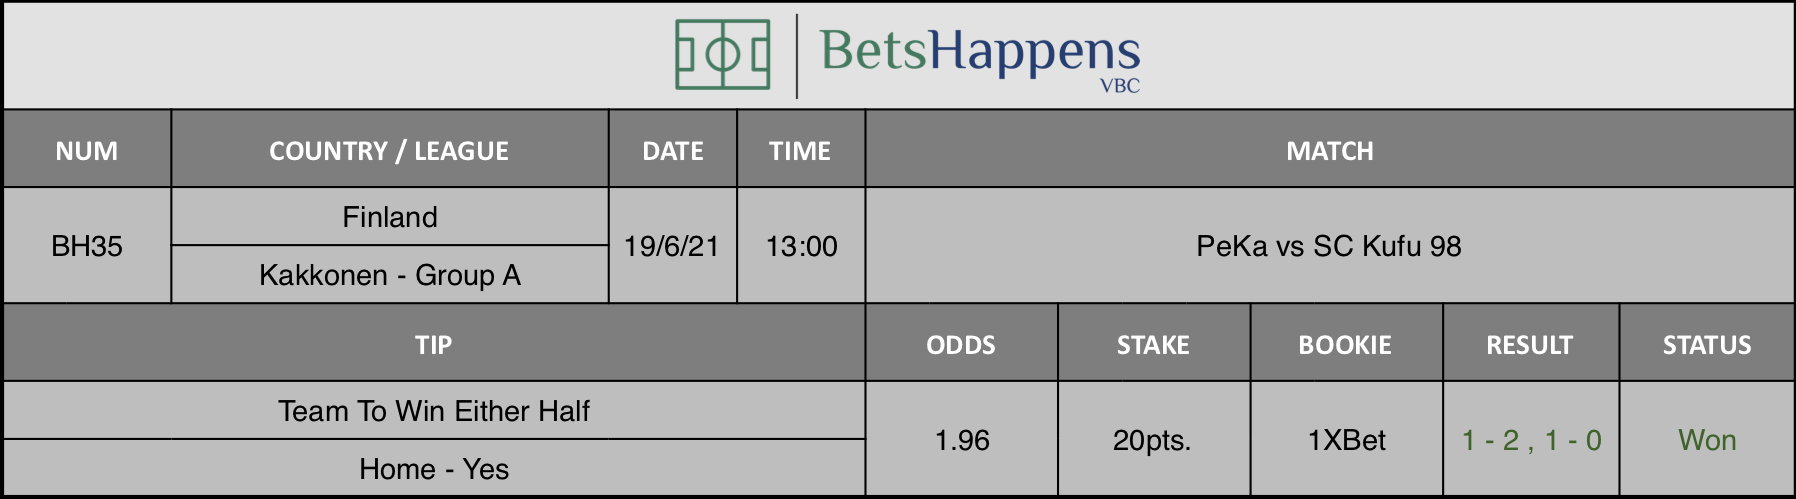 Results of our tip for the PeKa vs SC Kufu 98 Match Team To Win Either Half Home - Yes is recommended.